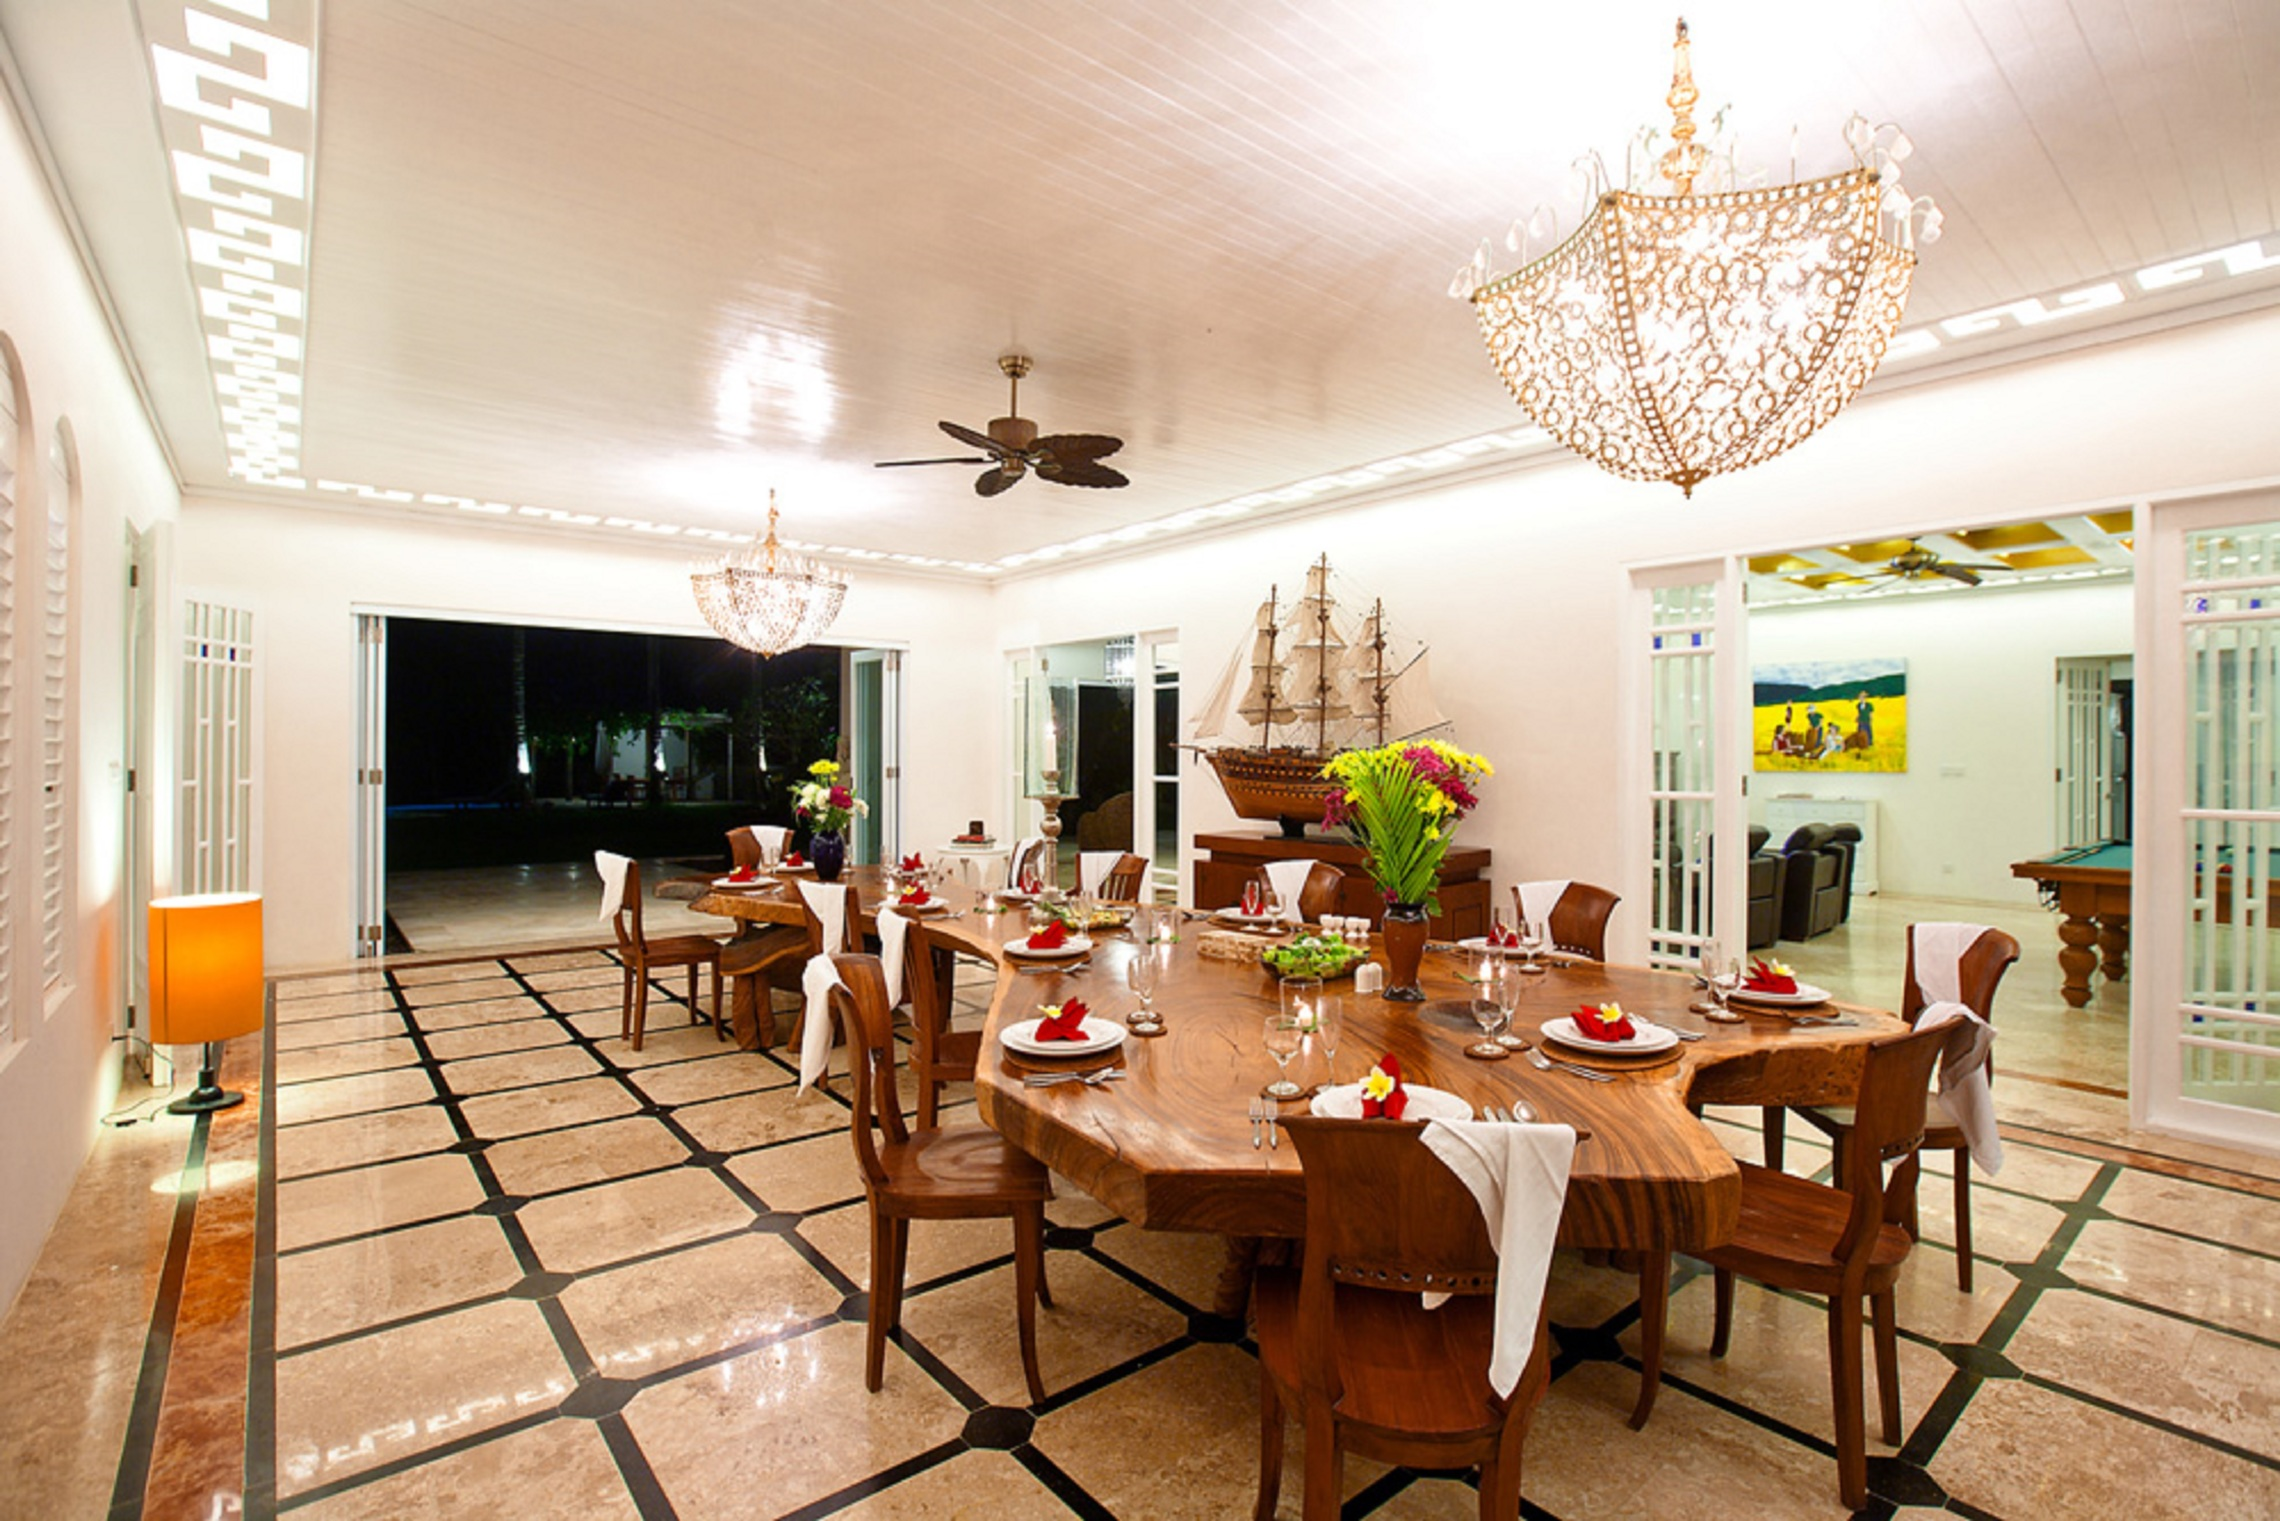 4 - 6 Bedrooms Beachfront Classic, Puri Nirwana Villa